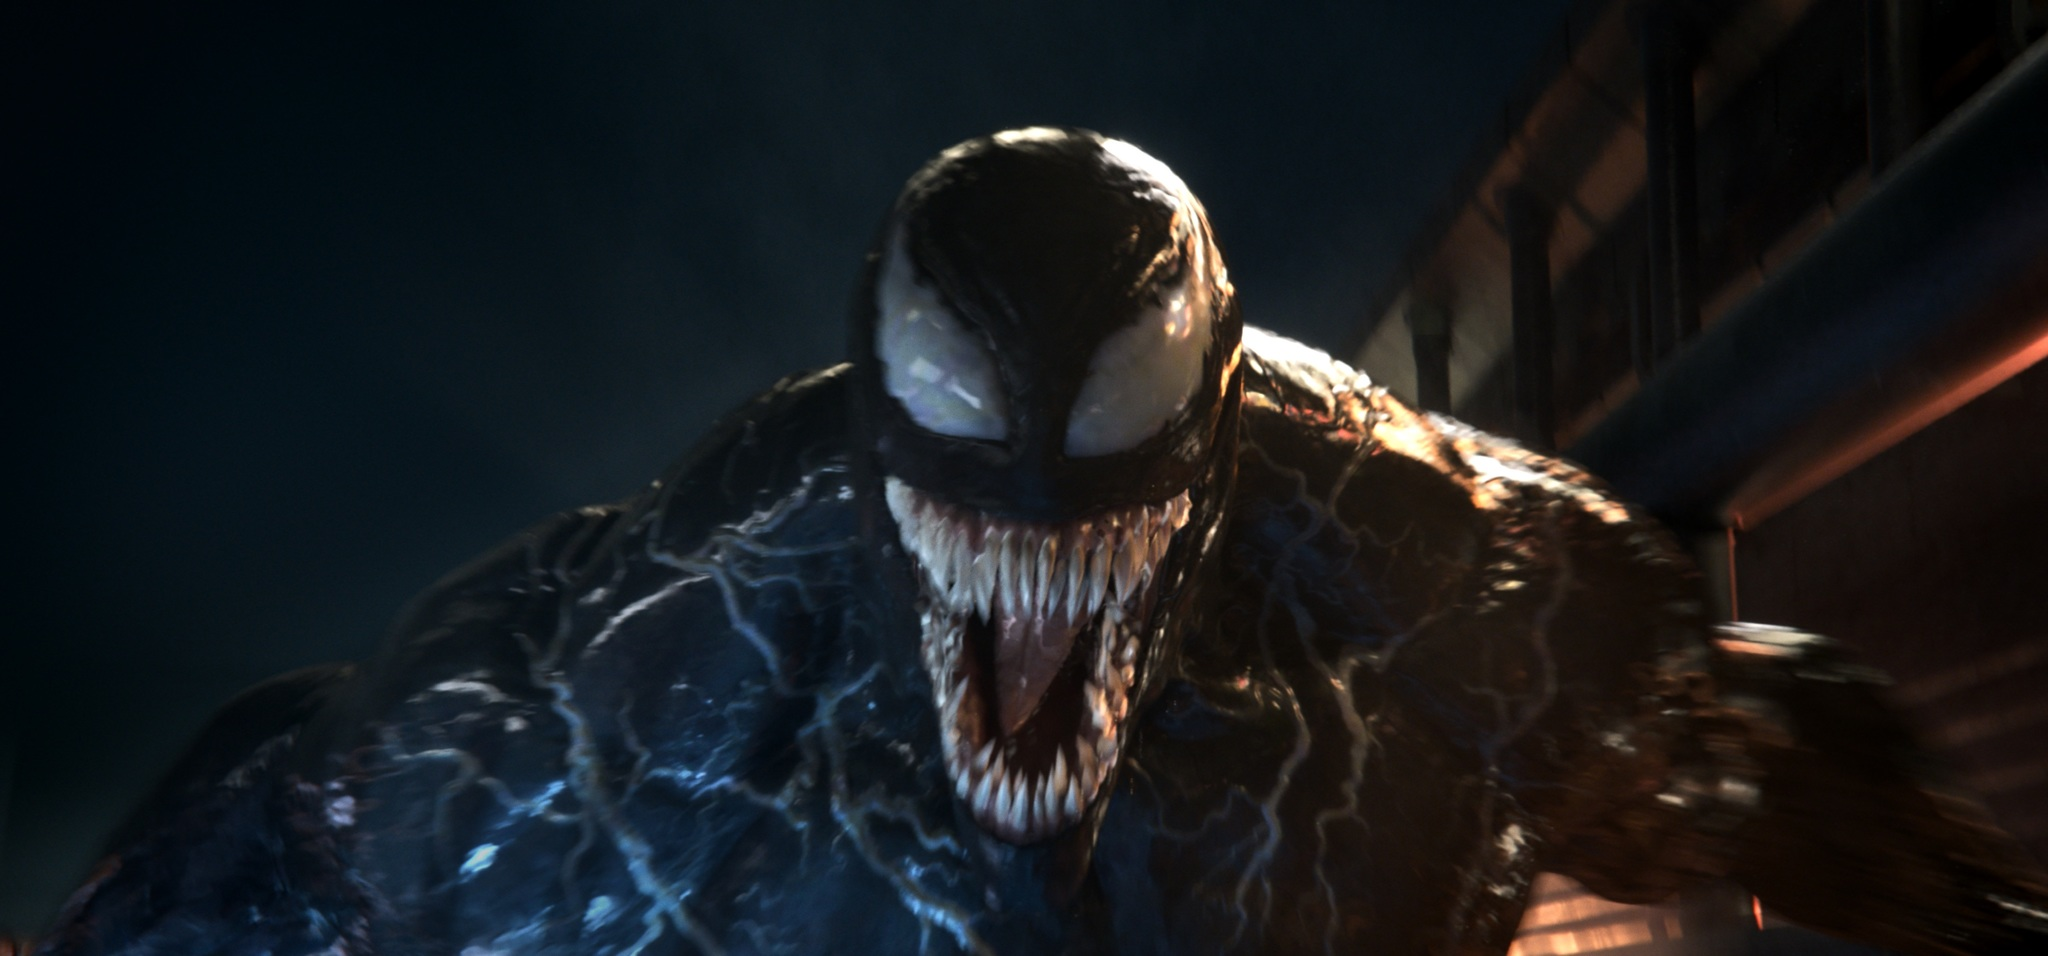 Venom 2018 Photo Gallery Imdb